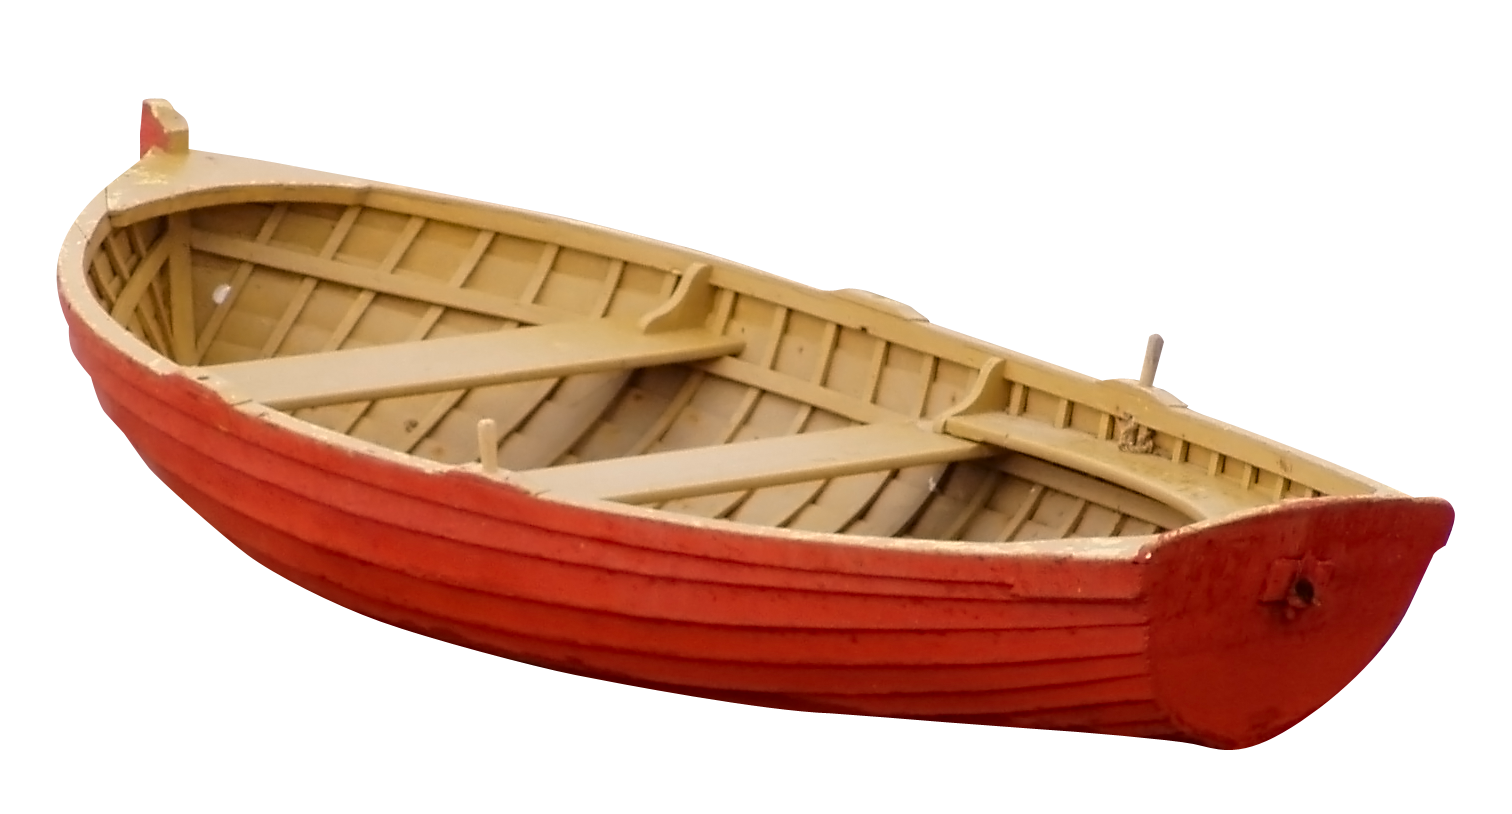 Boat PNG images free download.